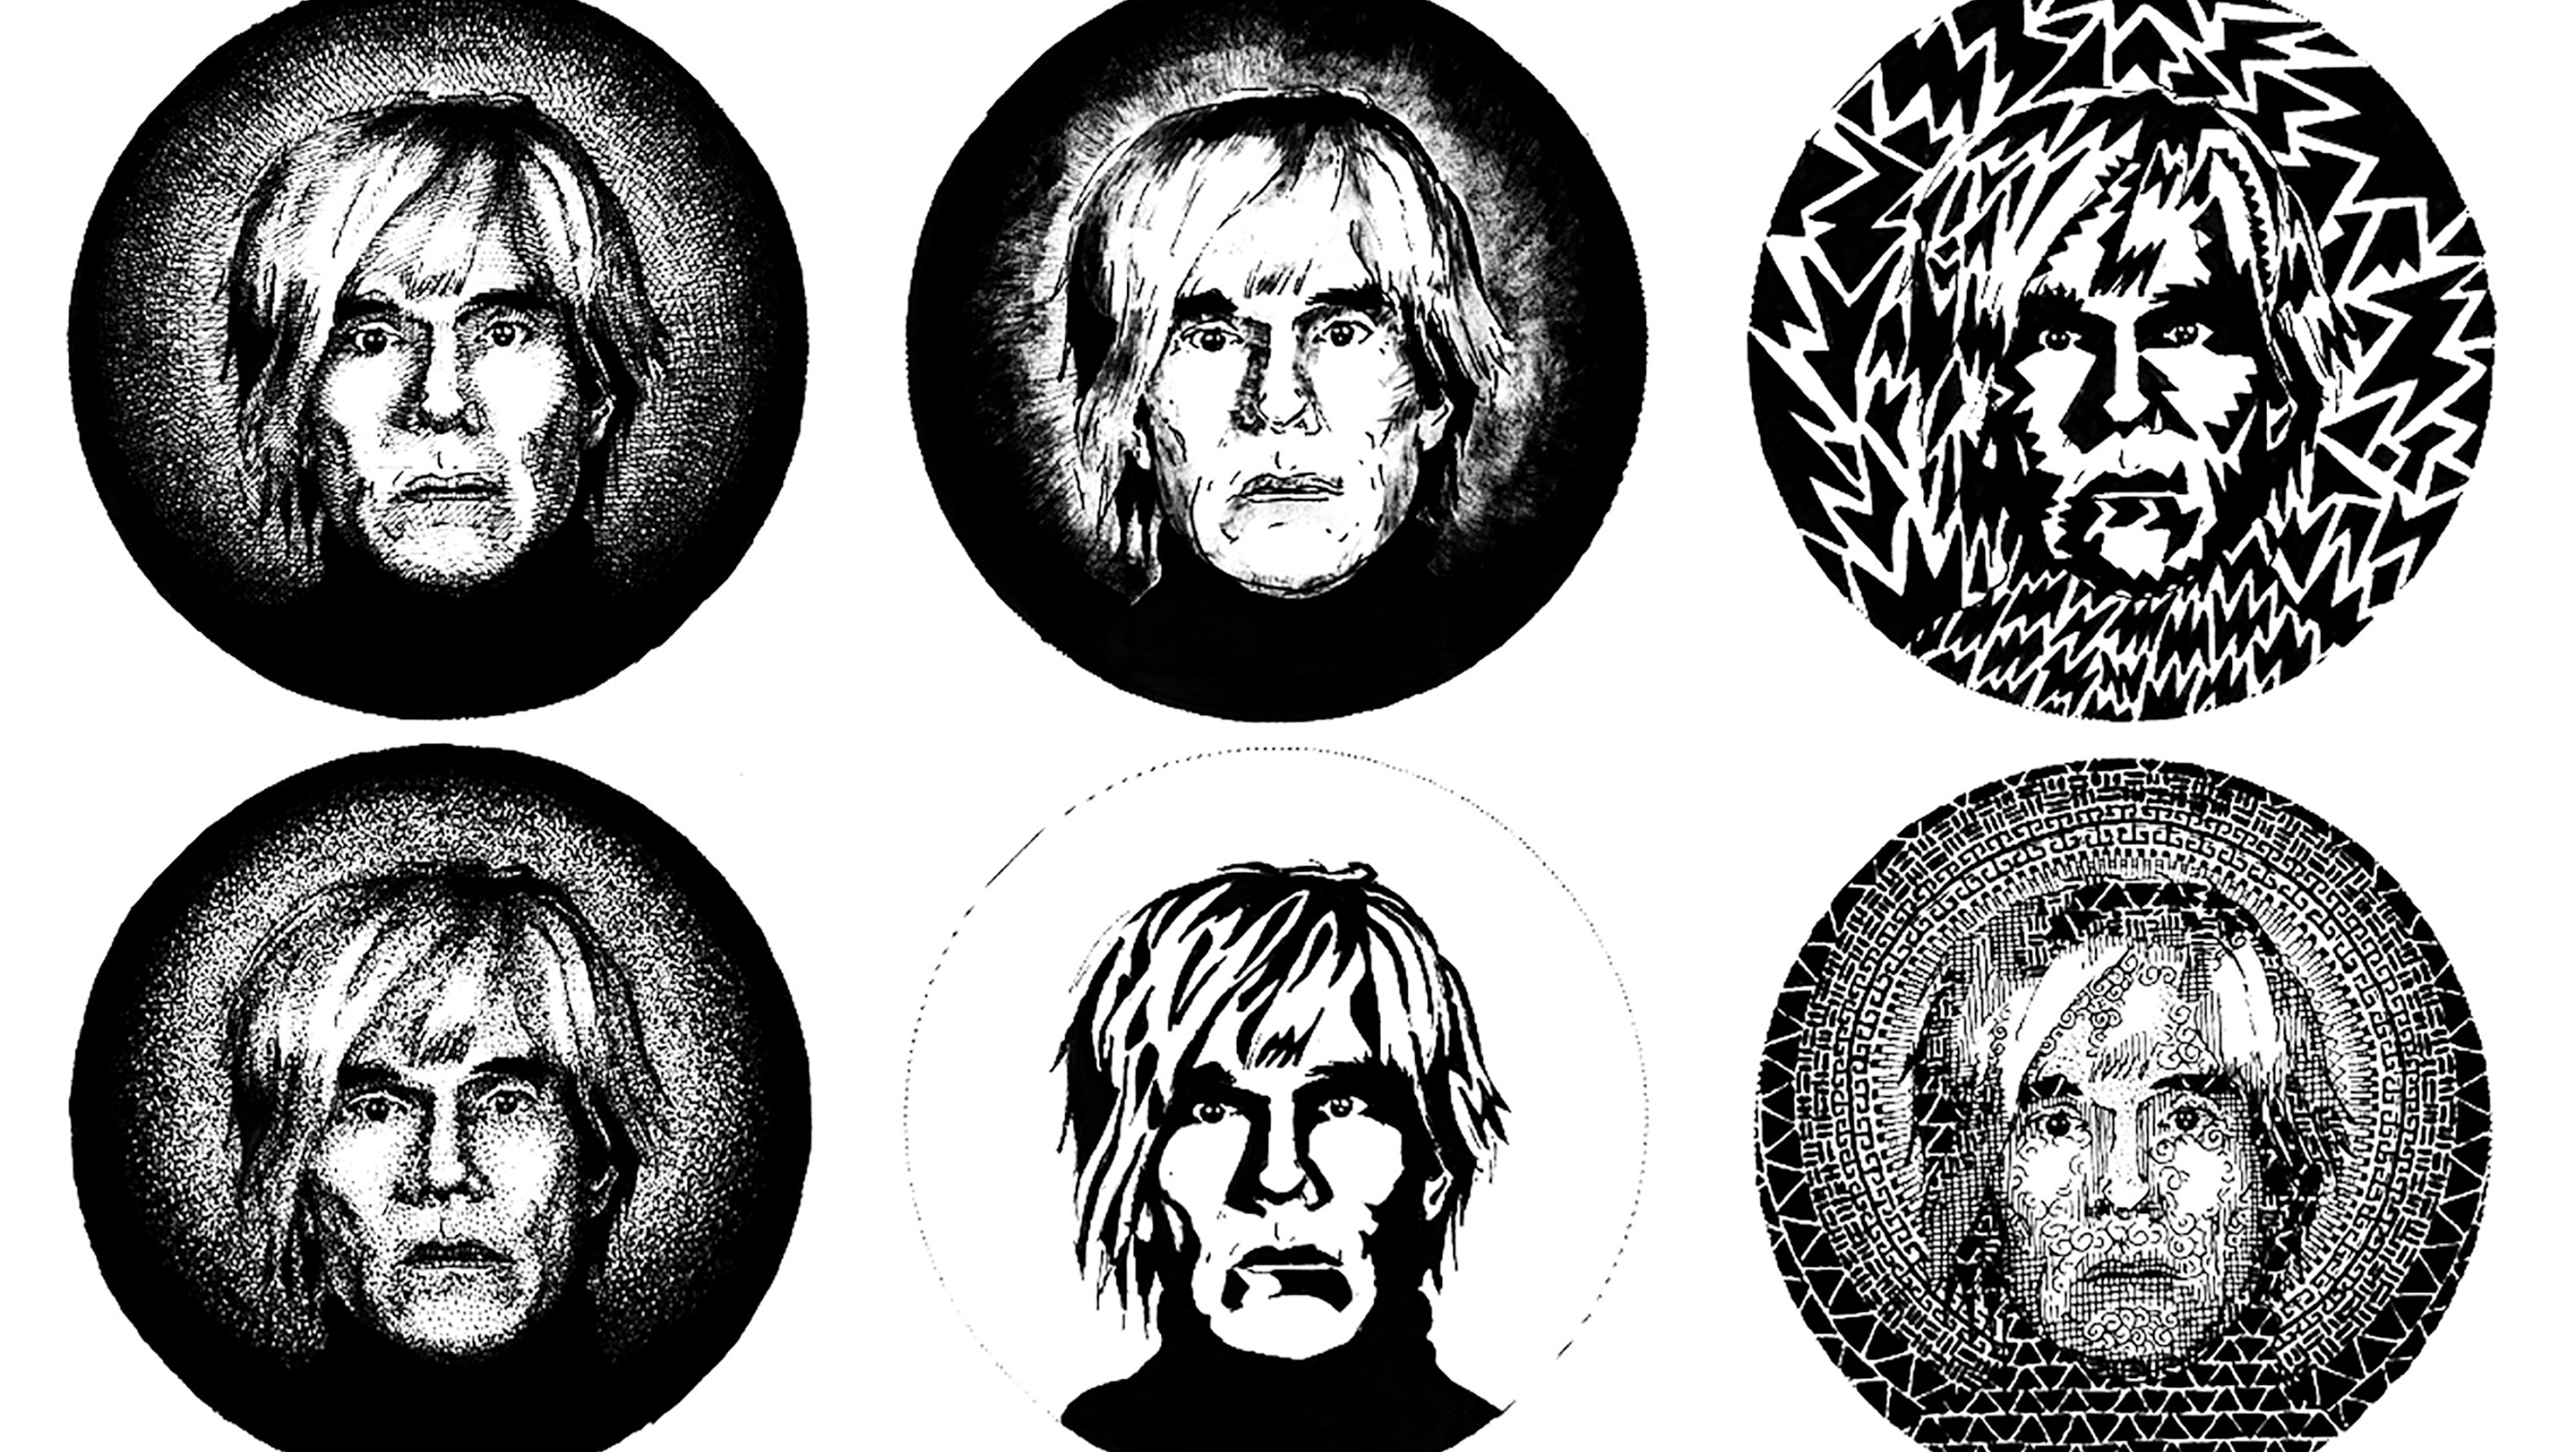 6 variations of a portrait inked in different variations.